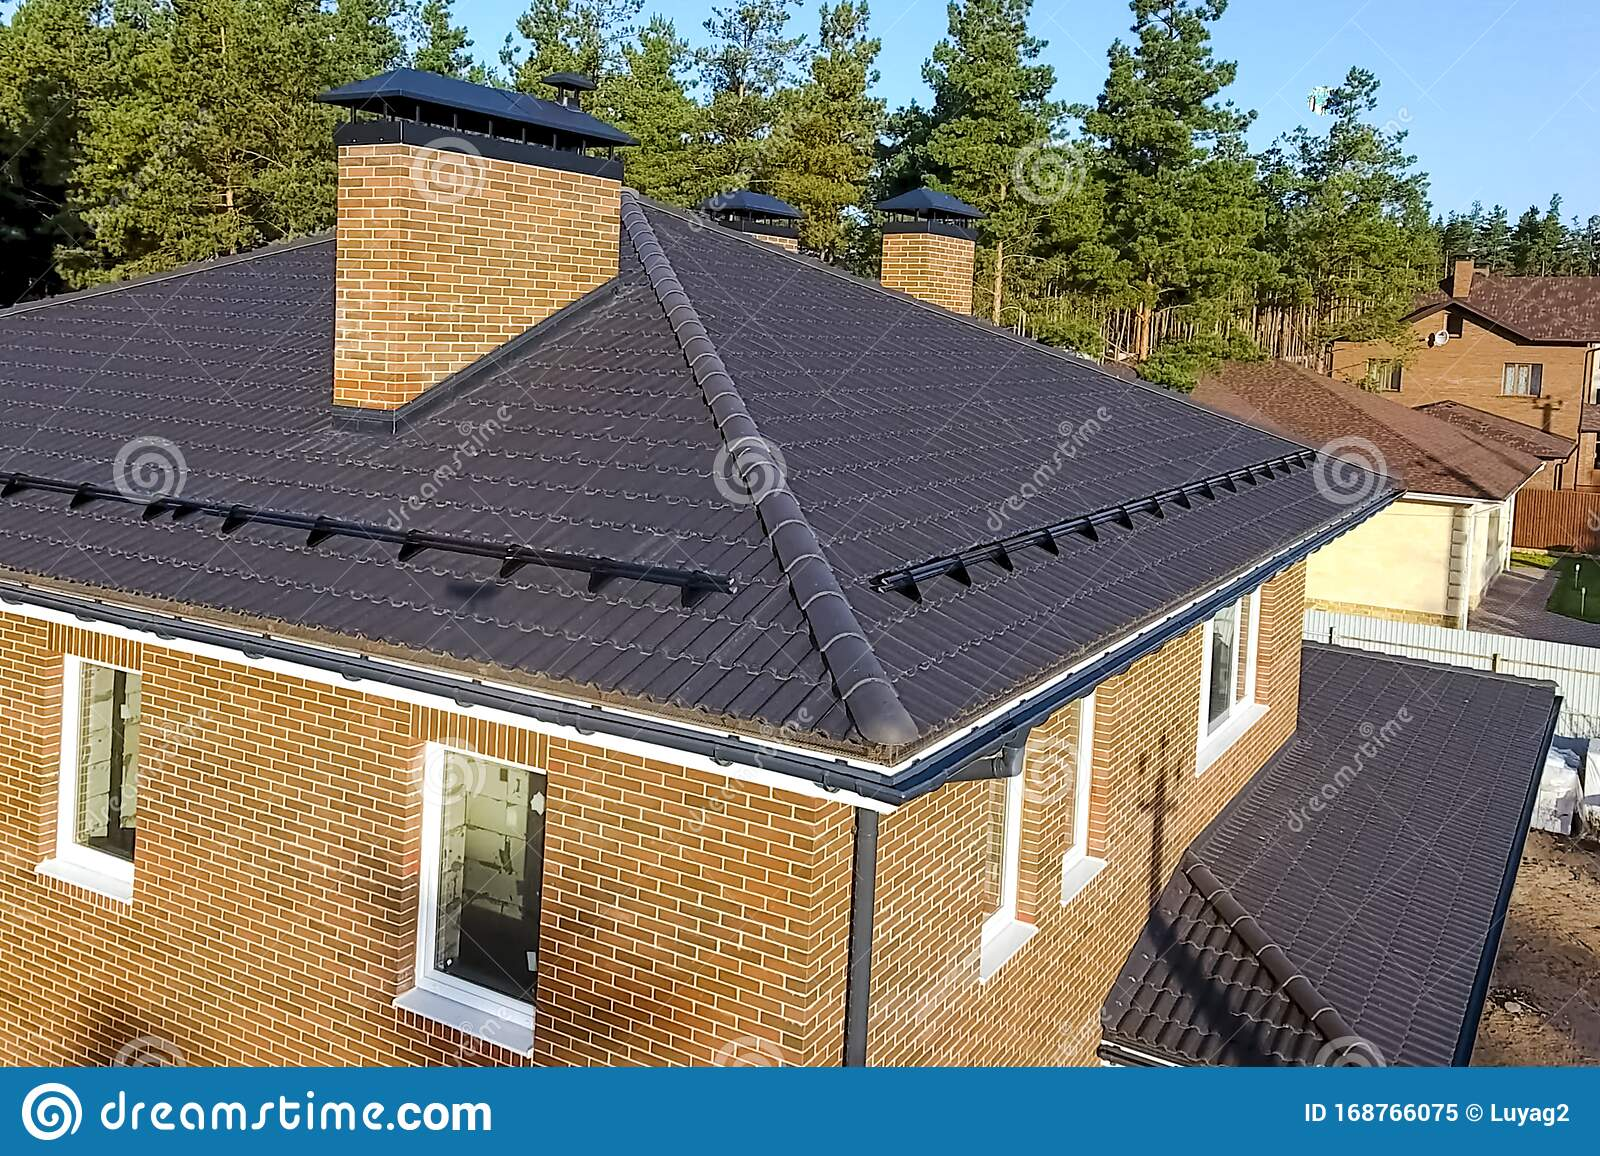 House With Ceramic Tile Roof Cement Sand Roof Tiles Stock Image Image Of Design Isolated 168766075